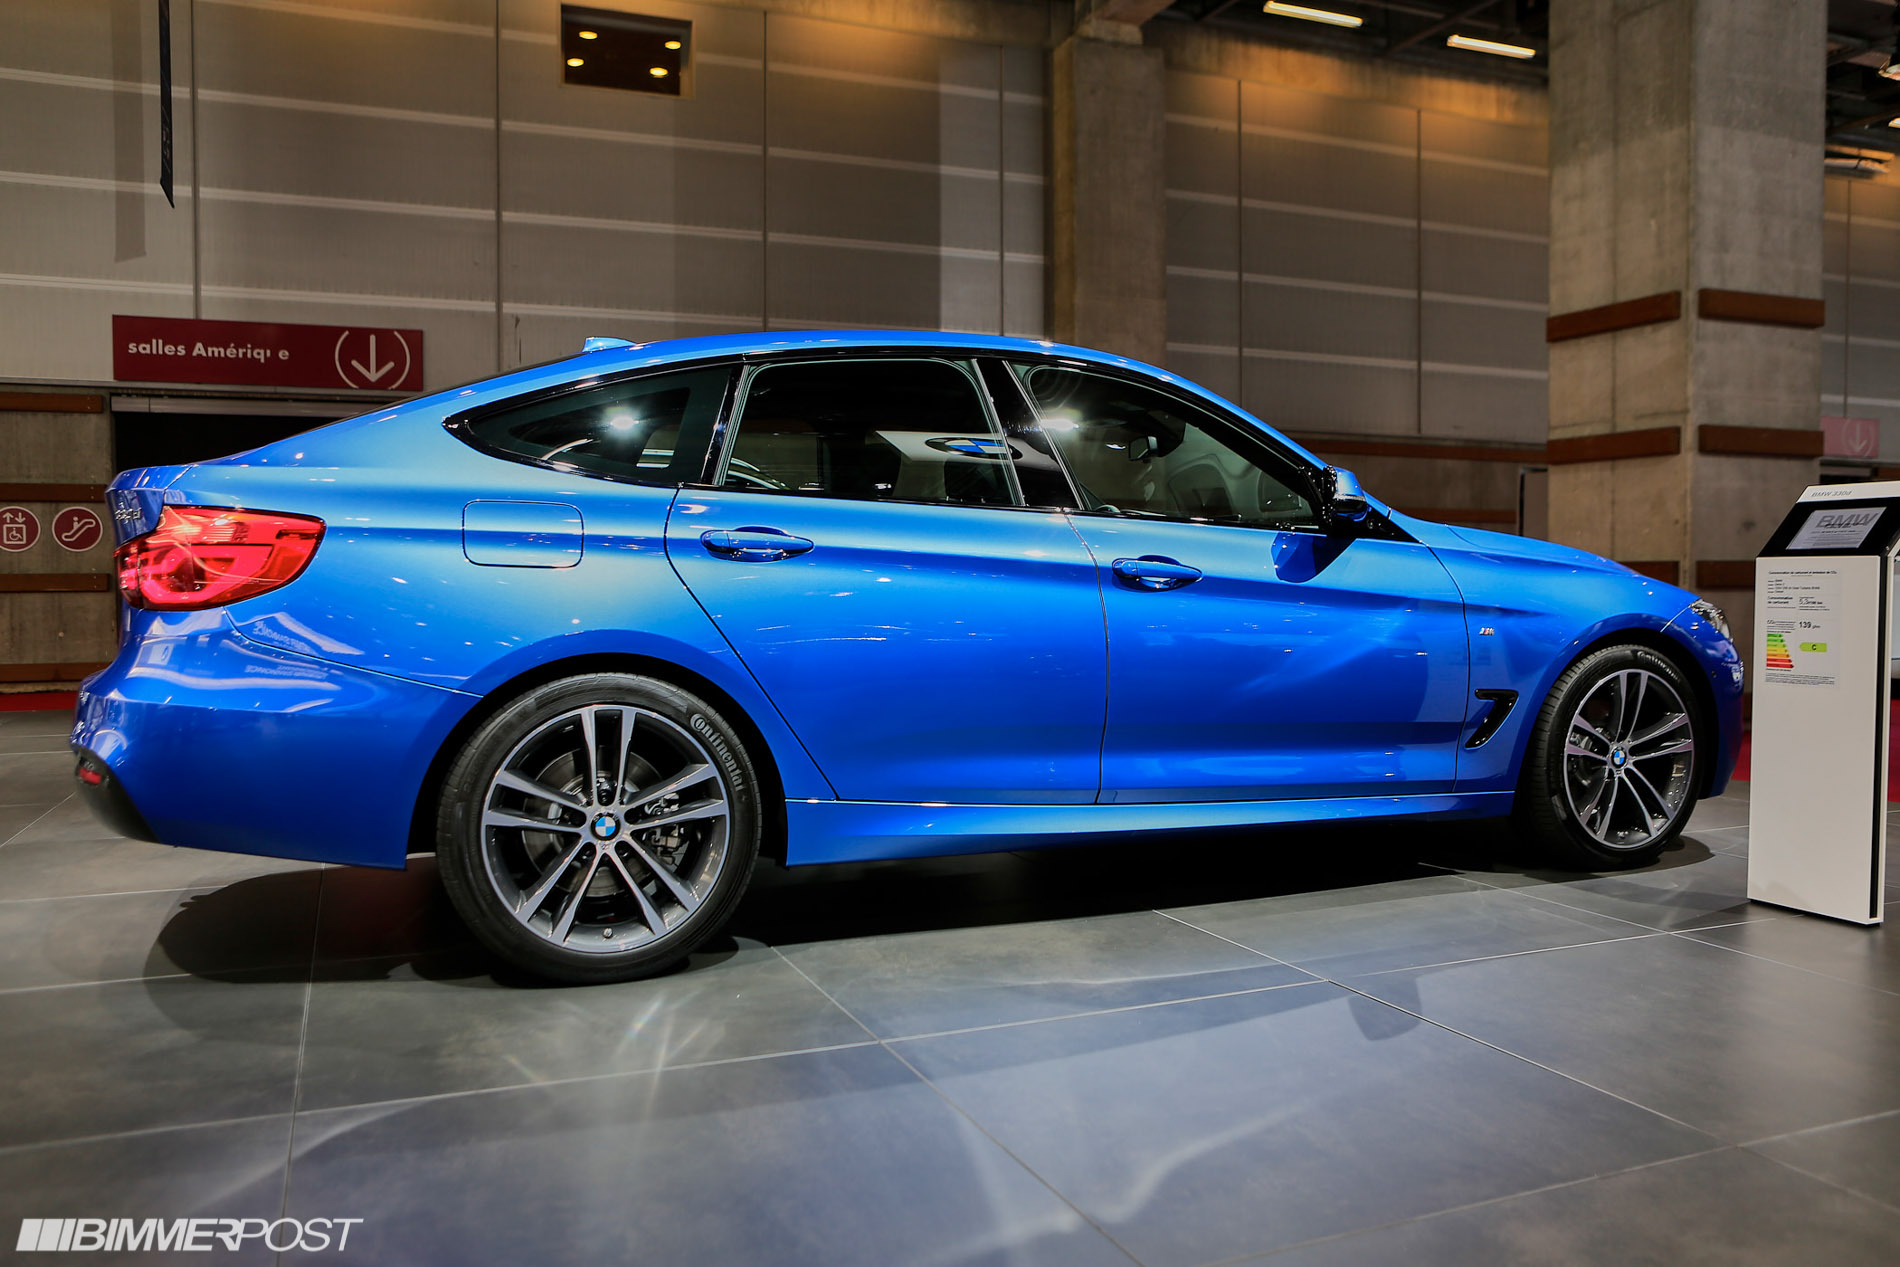 new bmw 3 series gran turismo lci debuts at paris auto show. Black Bedroom Furniture Sets. Home Design Ideas